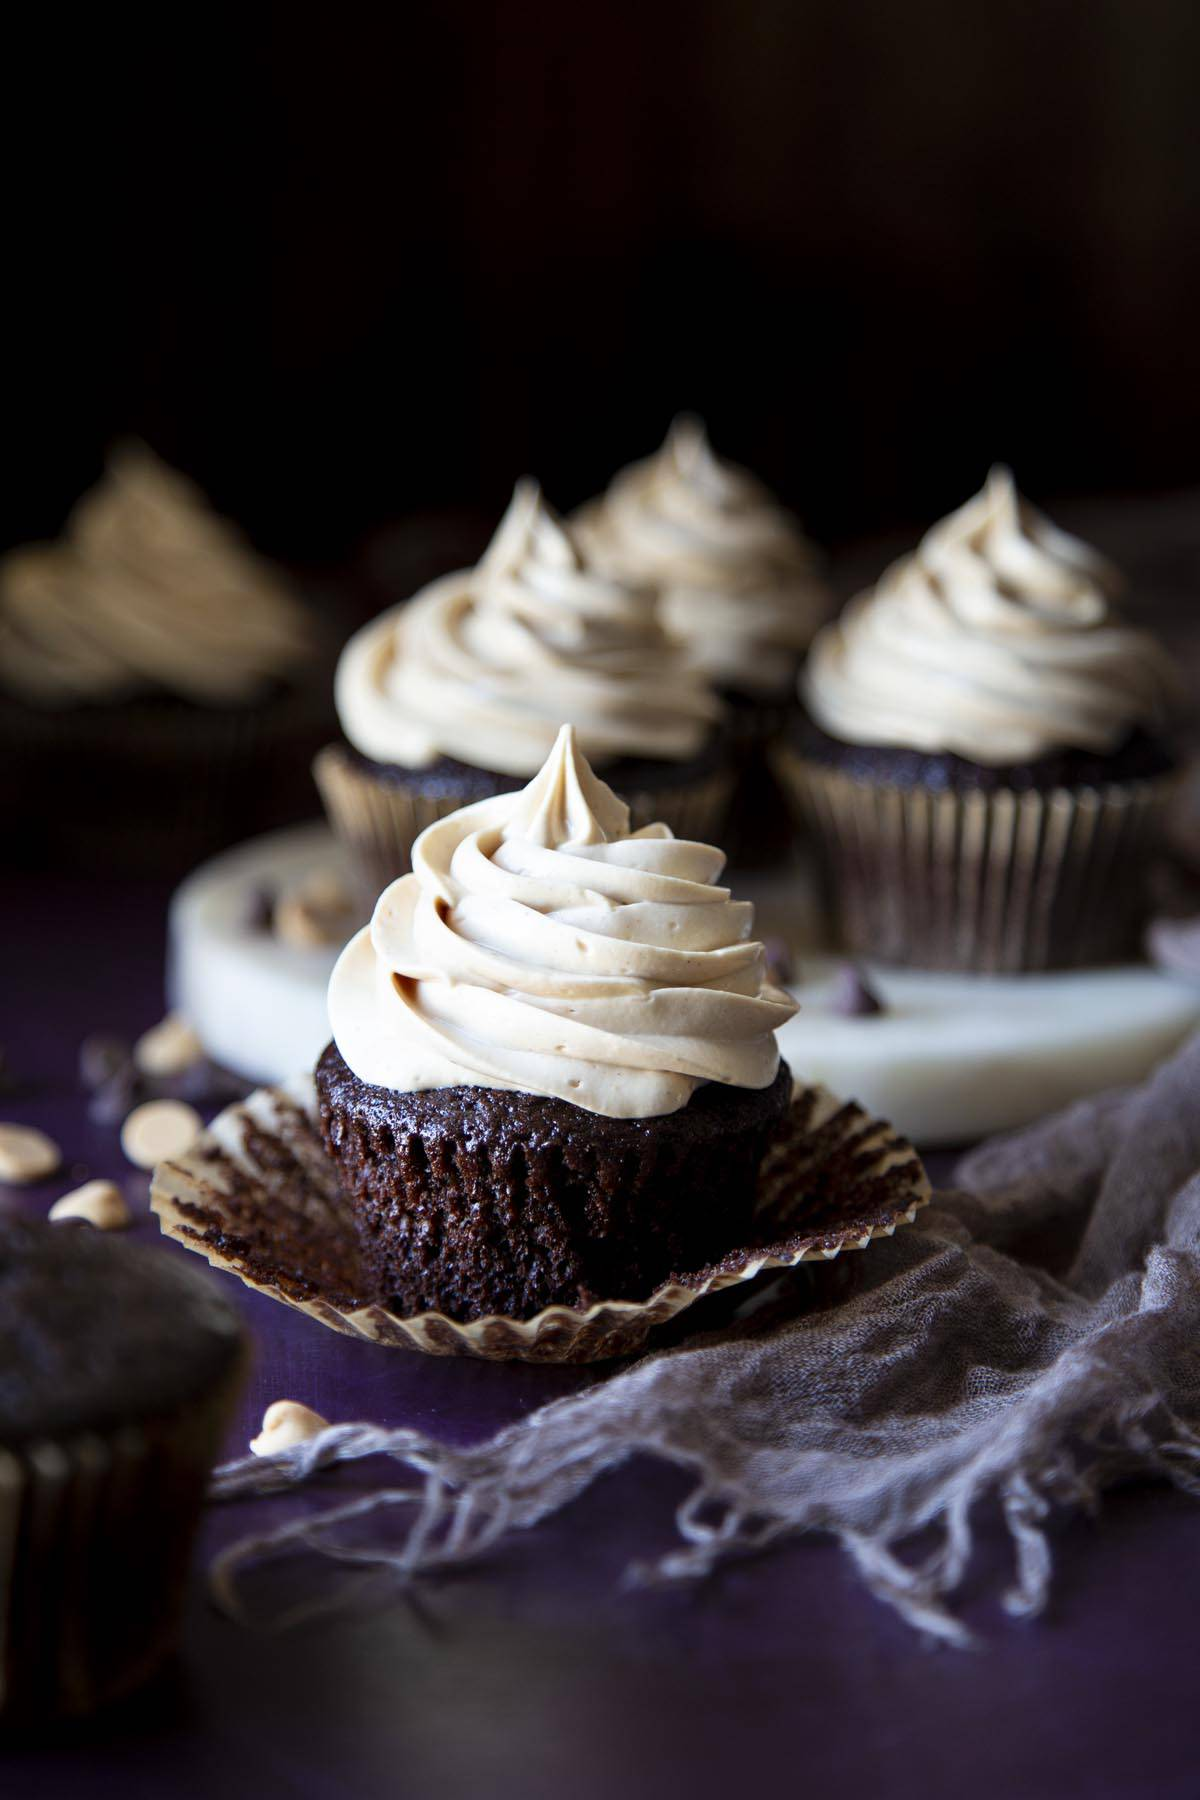 A chocolate peanut butter cupcake with the cupcake paper peeled off, more cupcakes in the background